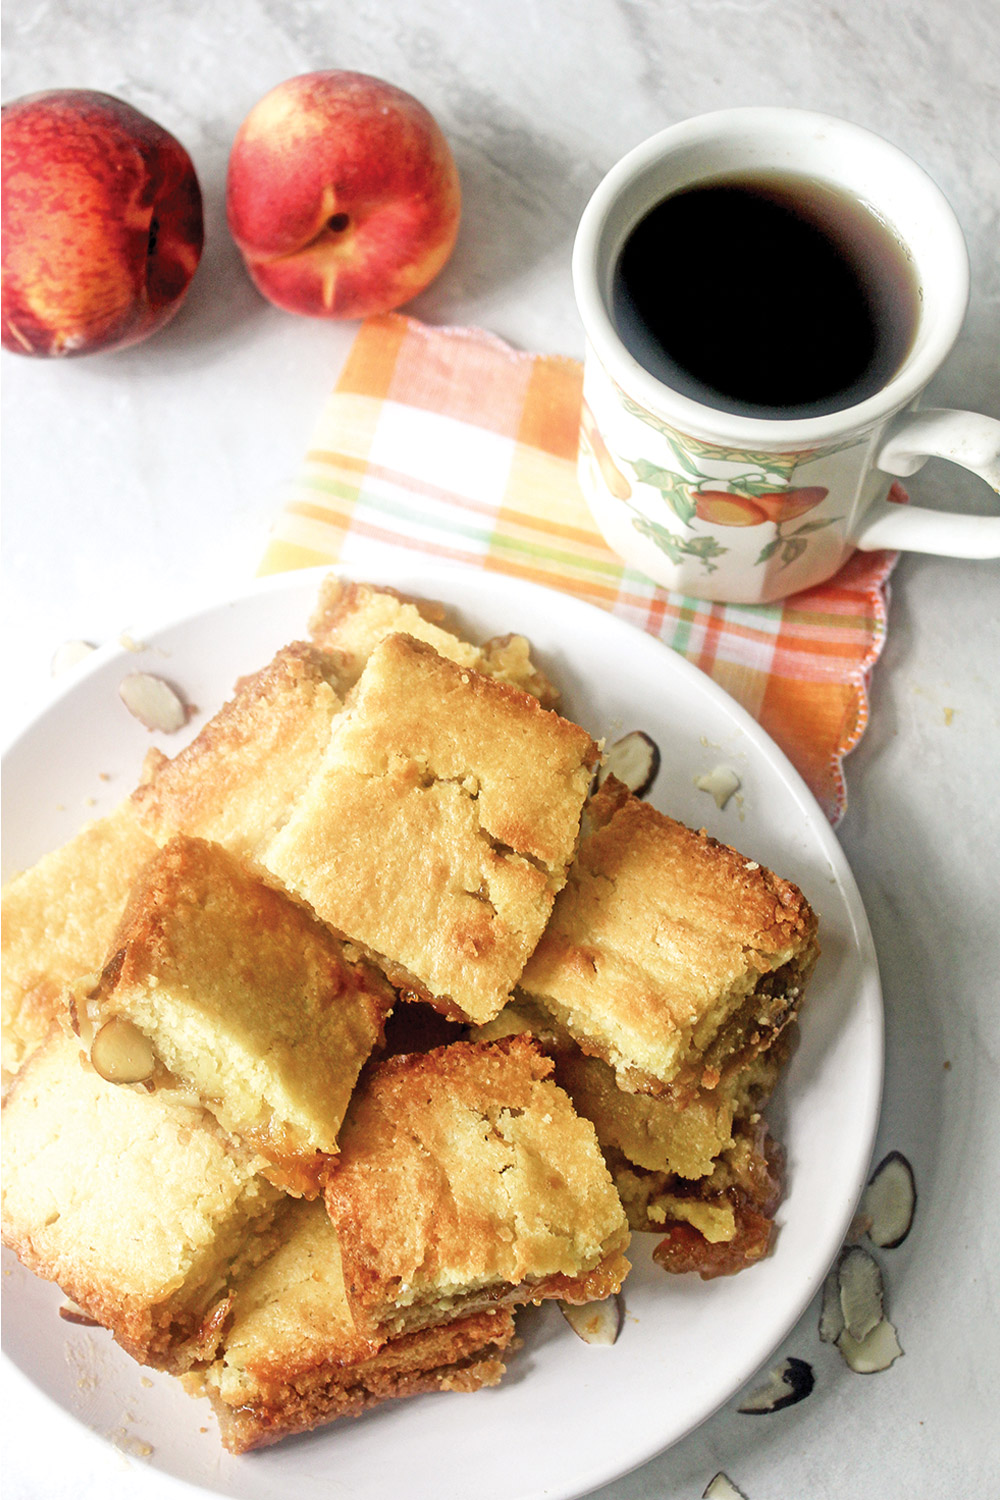 Peach cobbler jam bars from overhead perspective with cup of coffee on a plaid napkin and fresh peaches in the background.